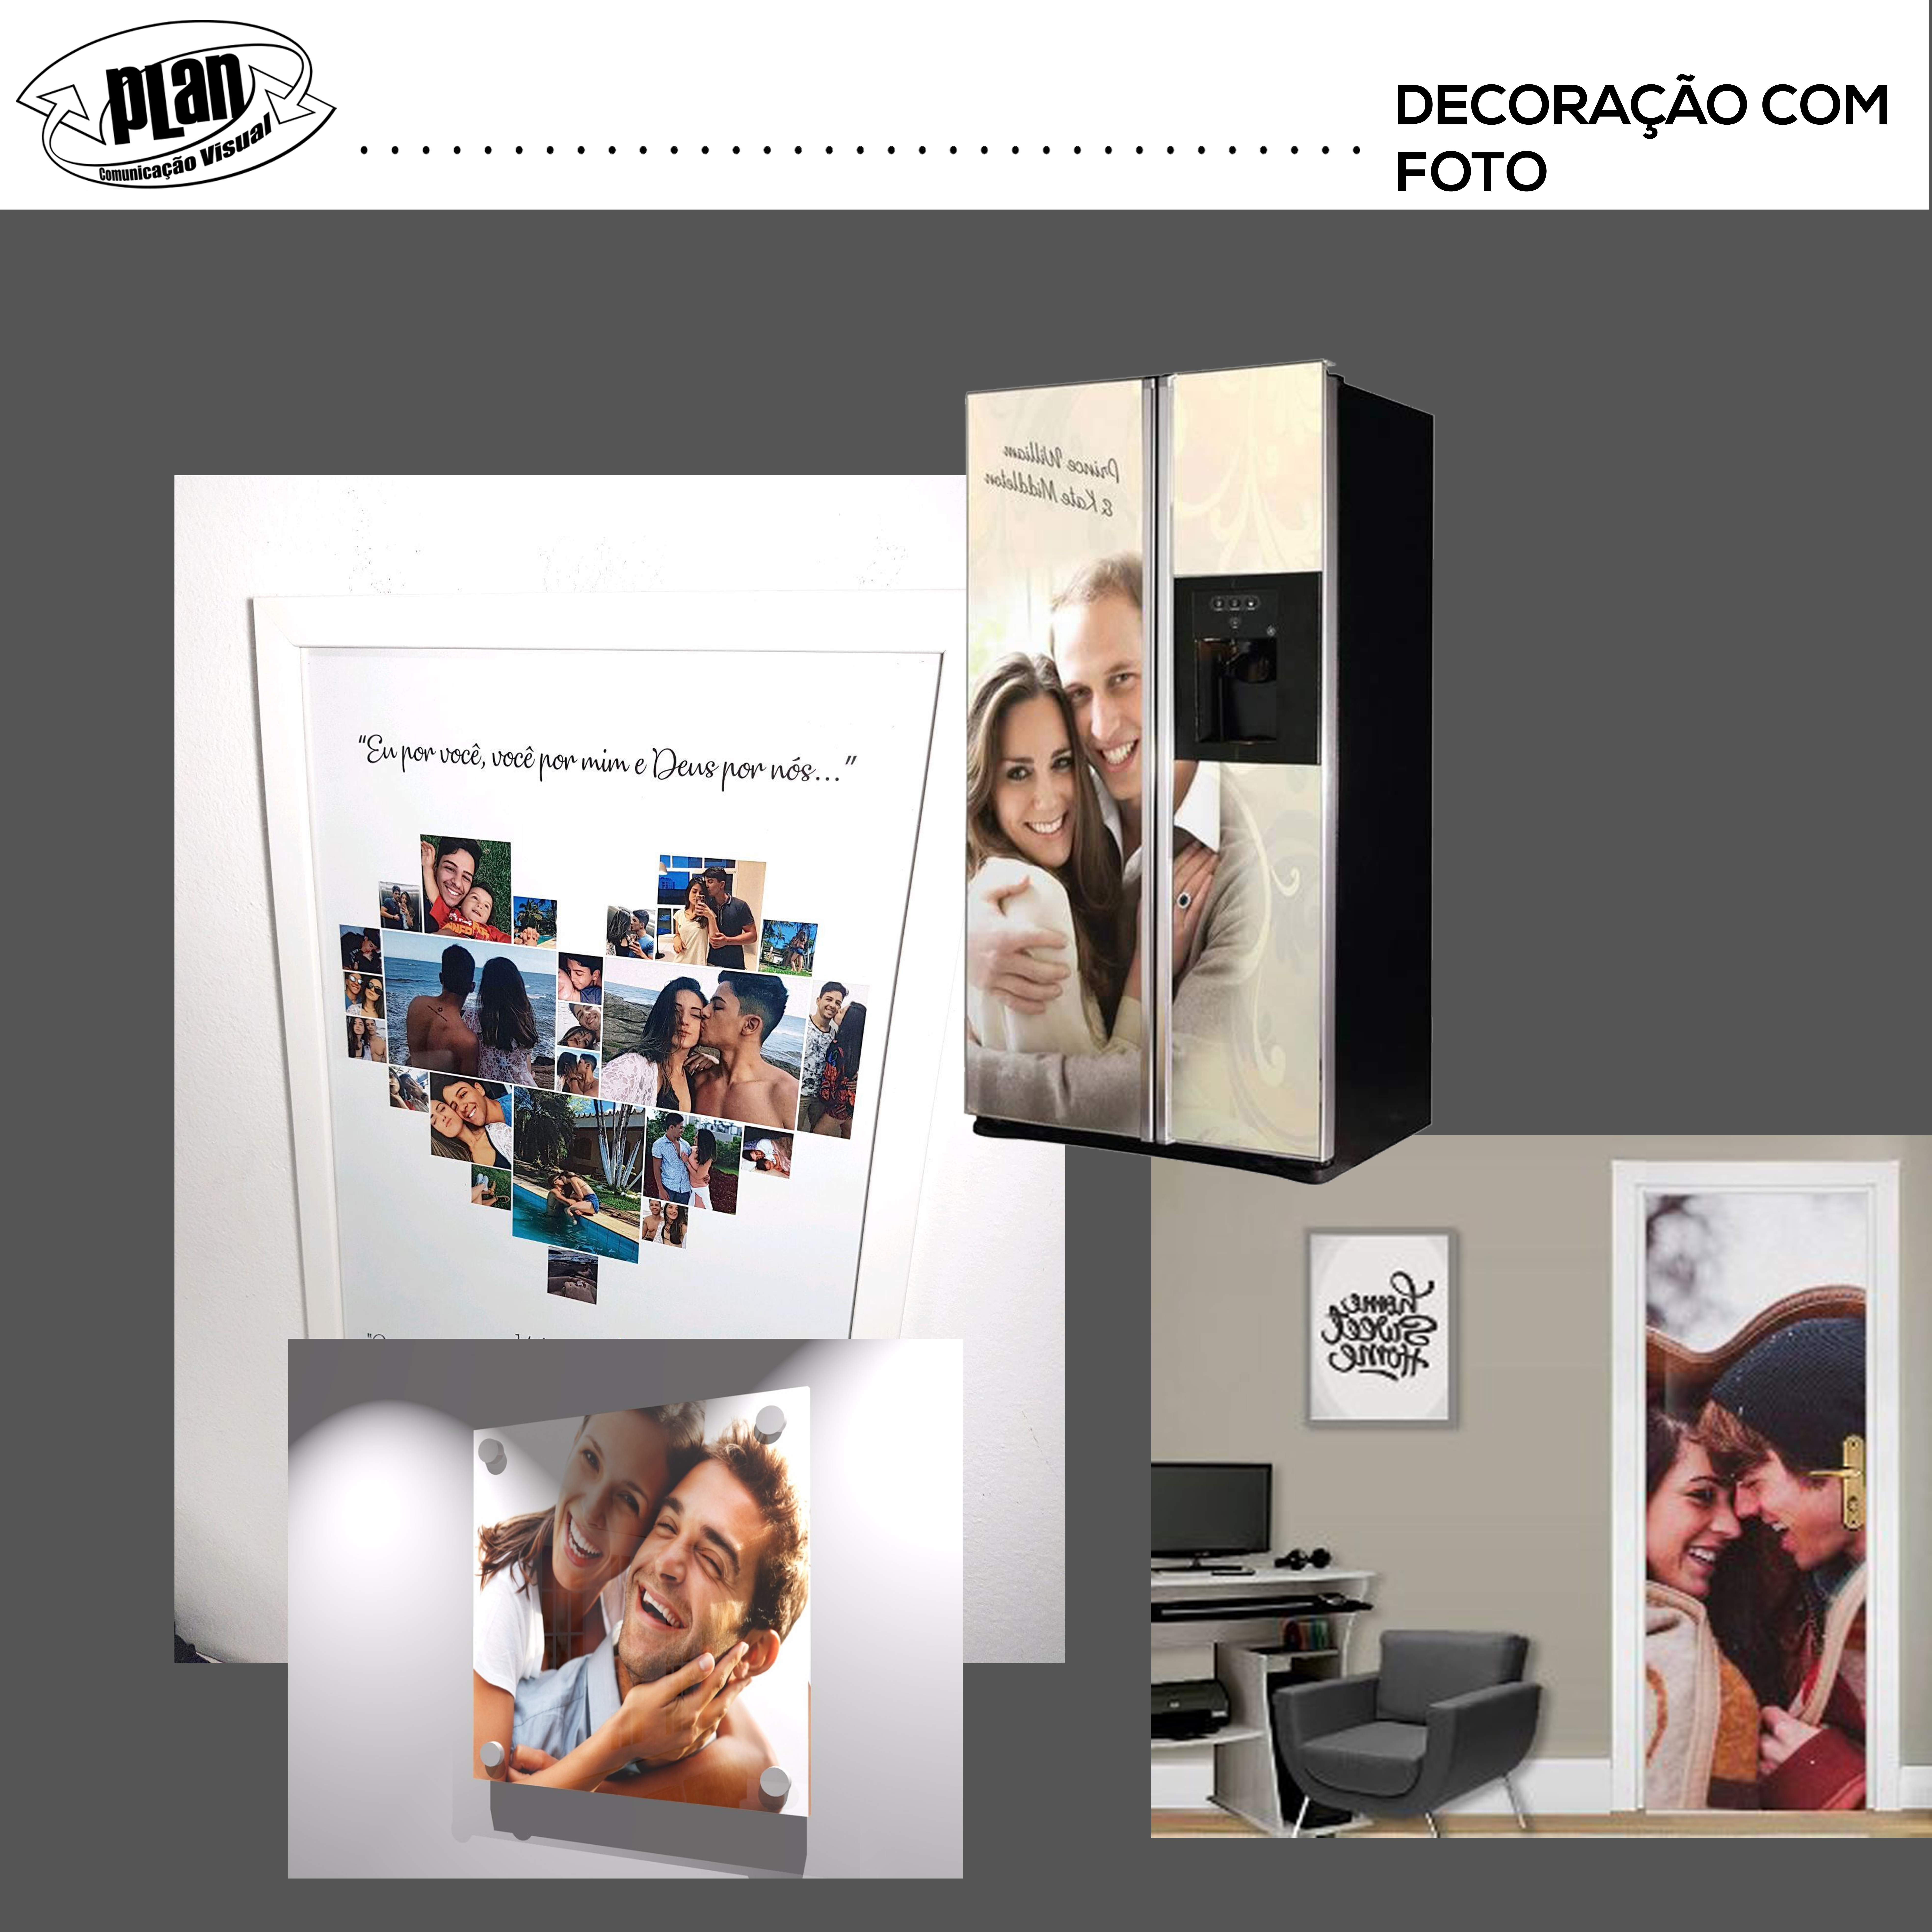 DECORACAO COM FOTO